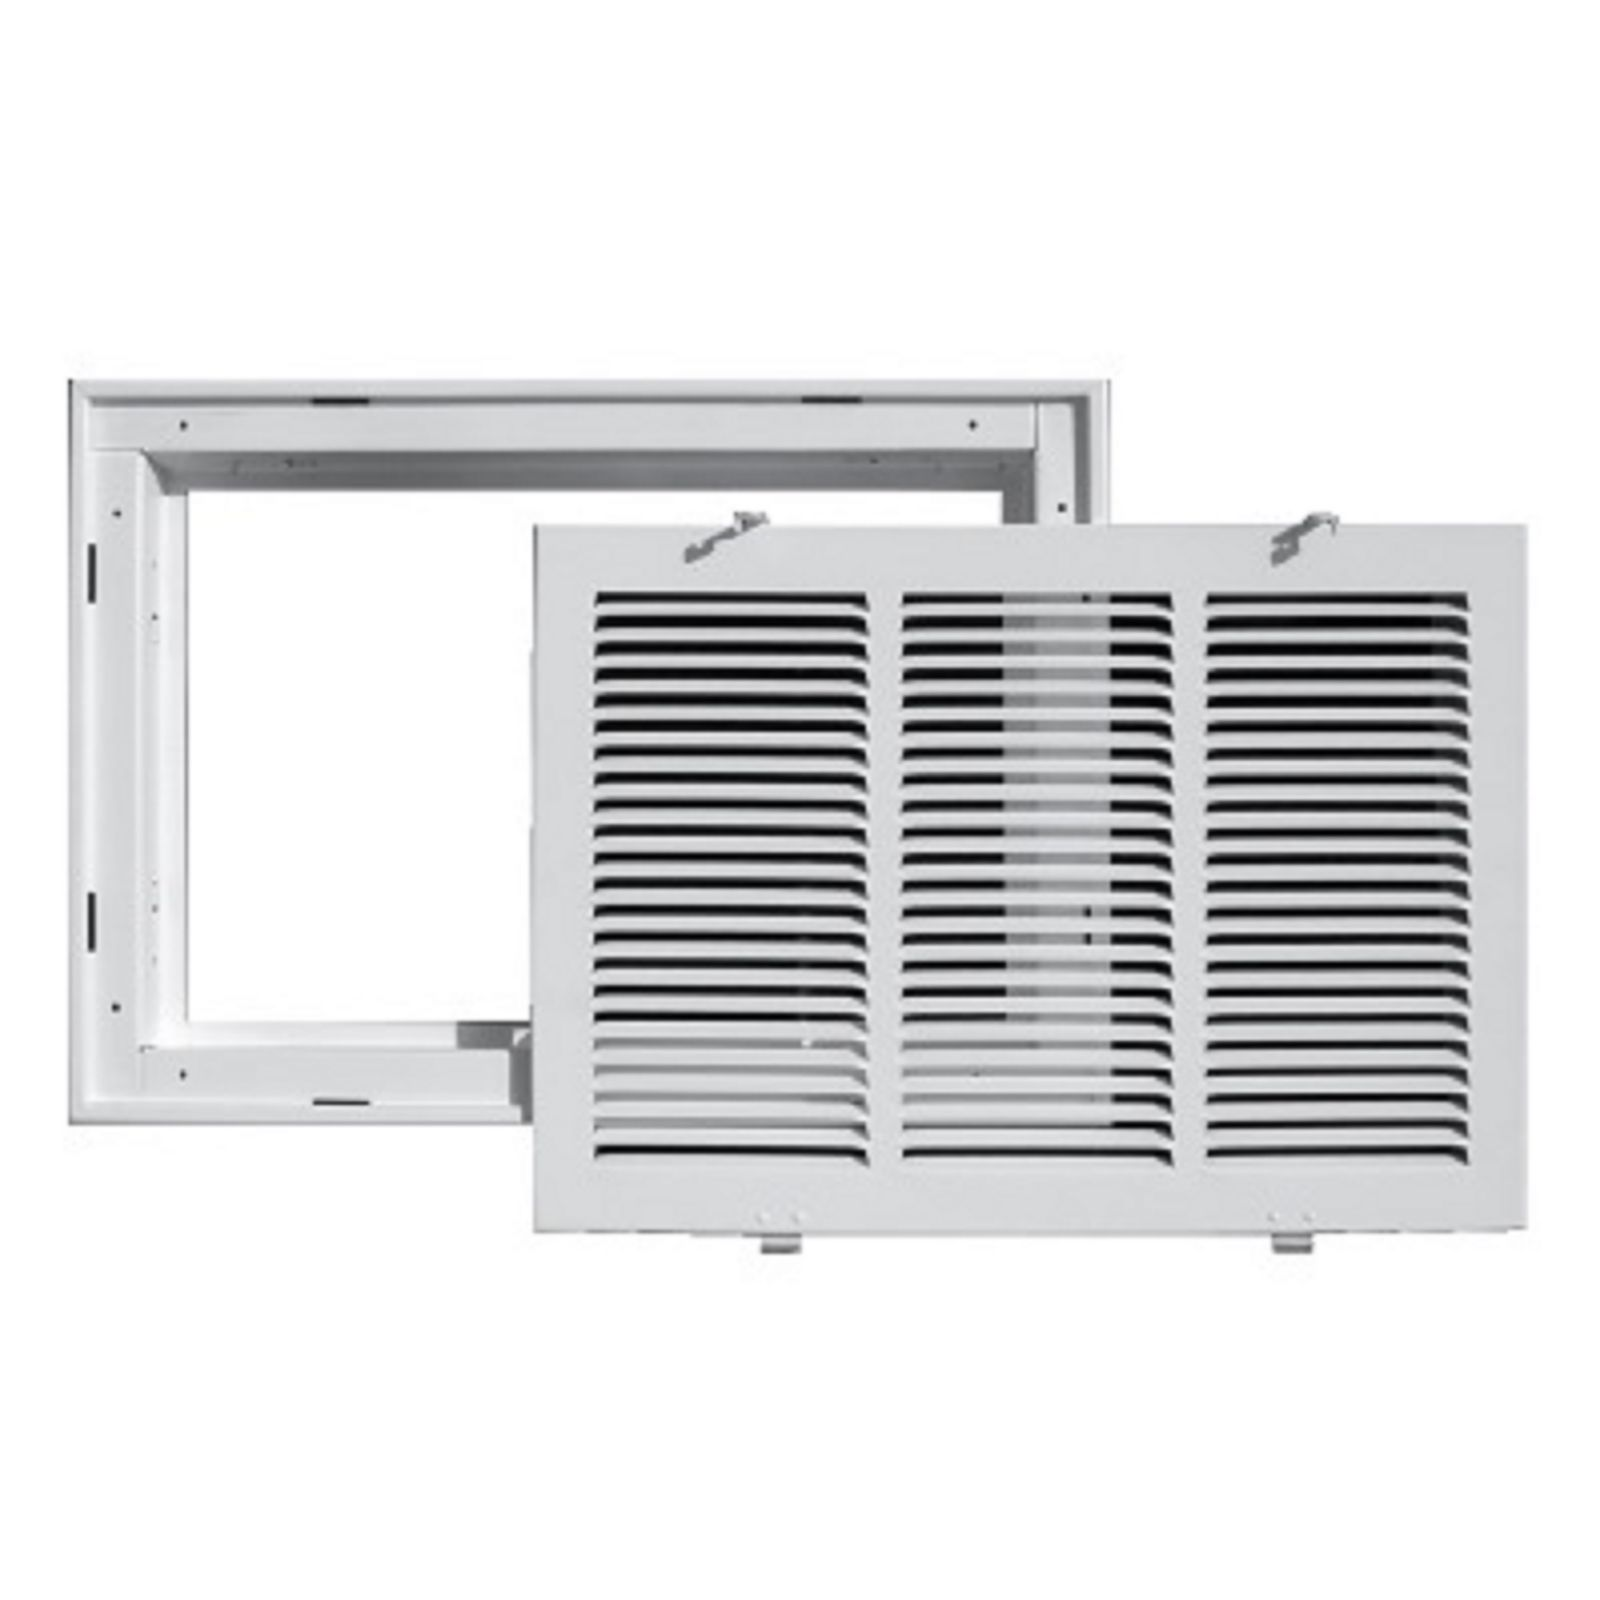 "TRUaire 190RF 24X10 - Steel Return Air Filter Grille With Removable Face, White, 24"" X 10"""